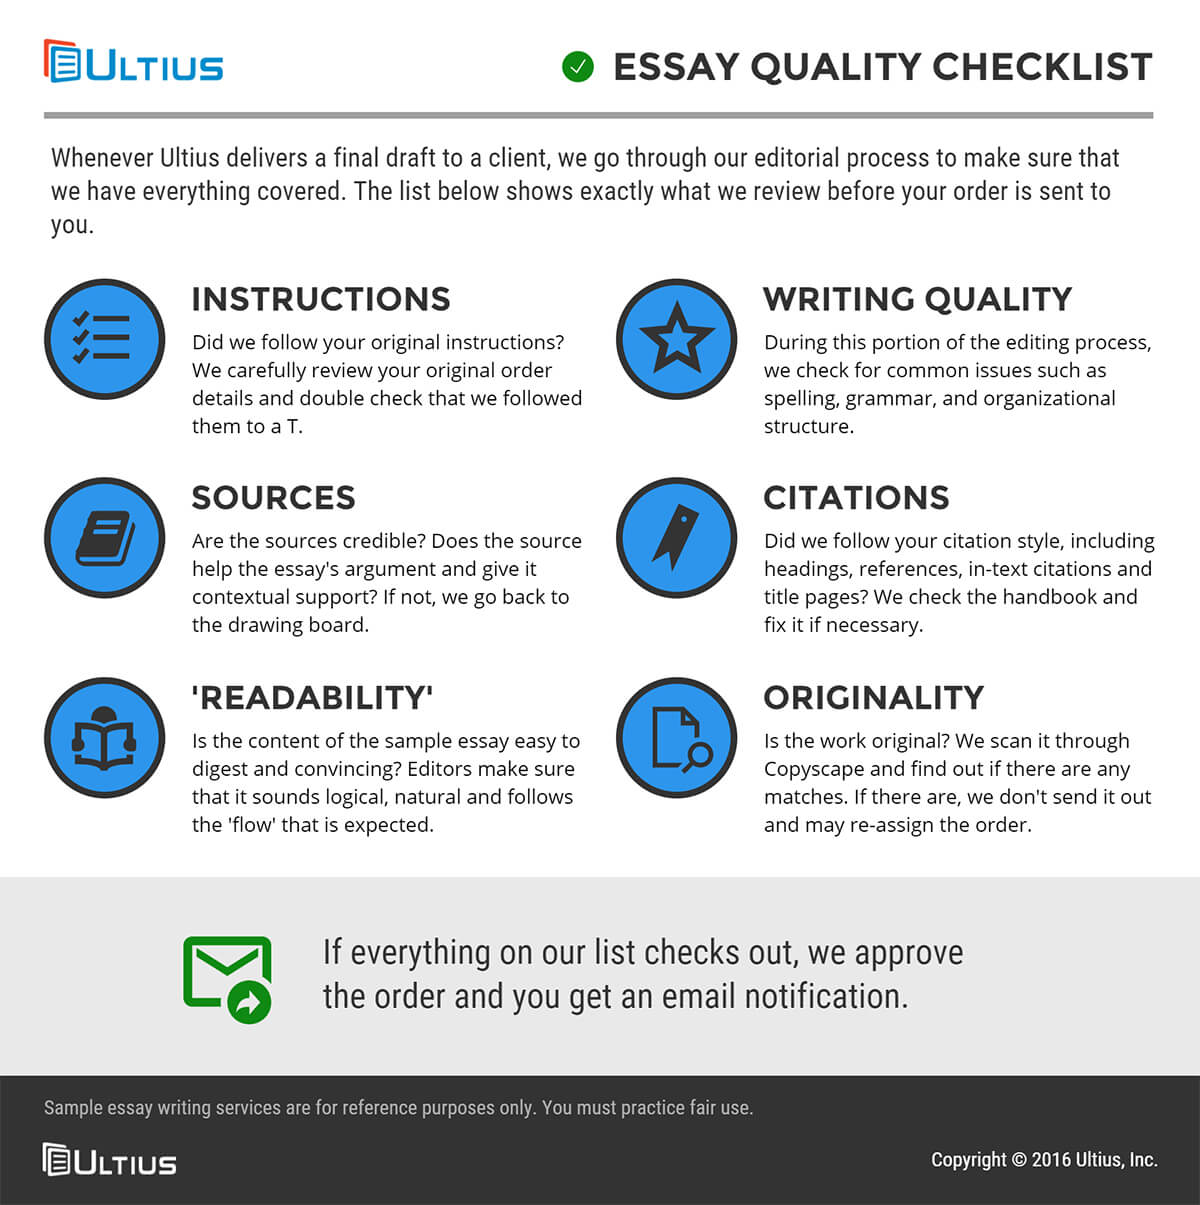 013 What Are The Parts Of An Essay Quality Checklist Striking Three Introduction Evaluative And Their Meaning Full